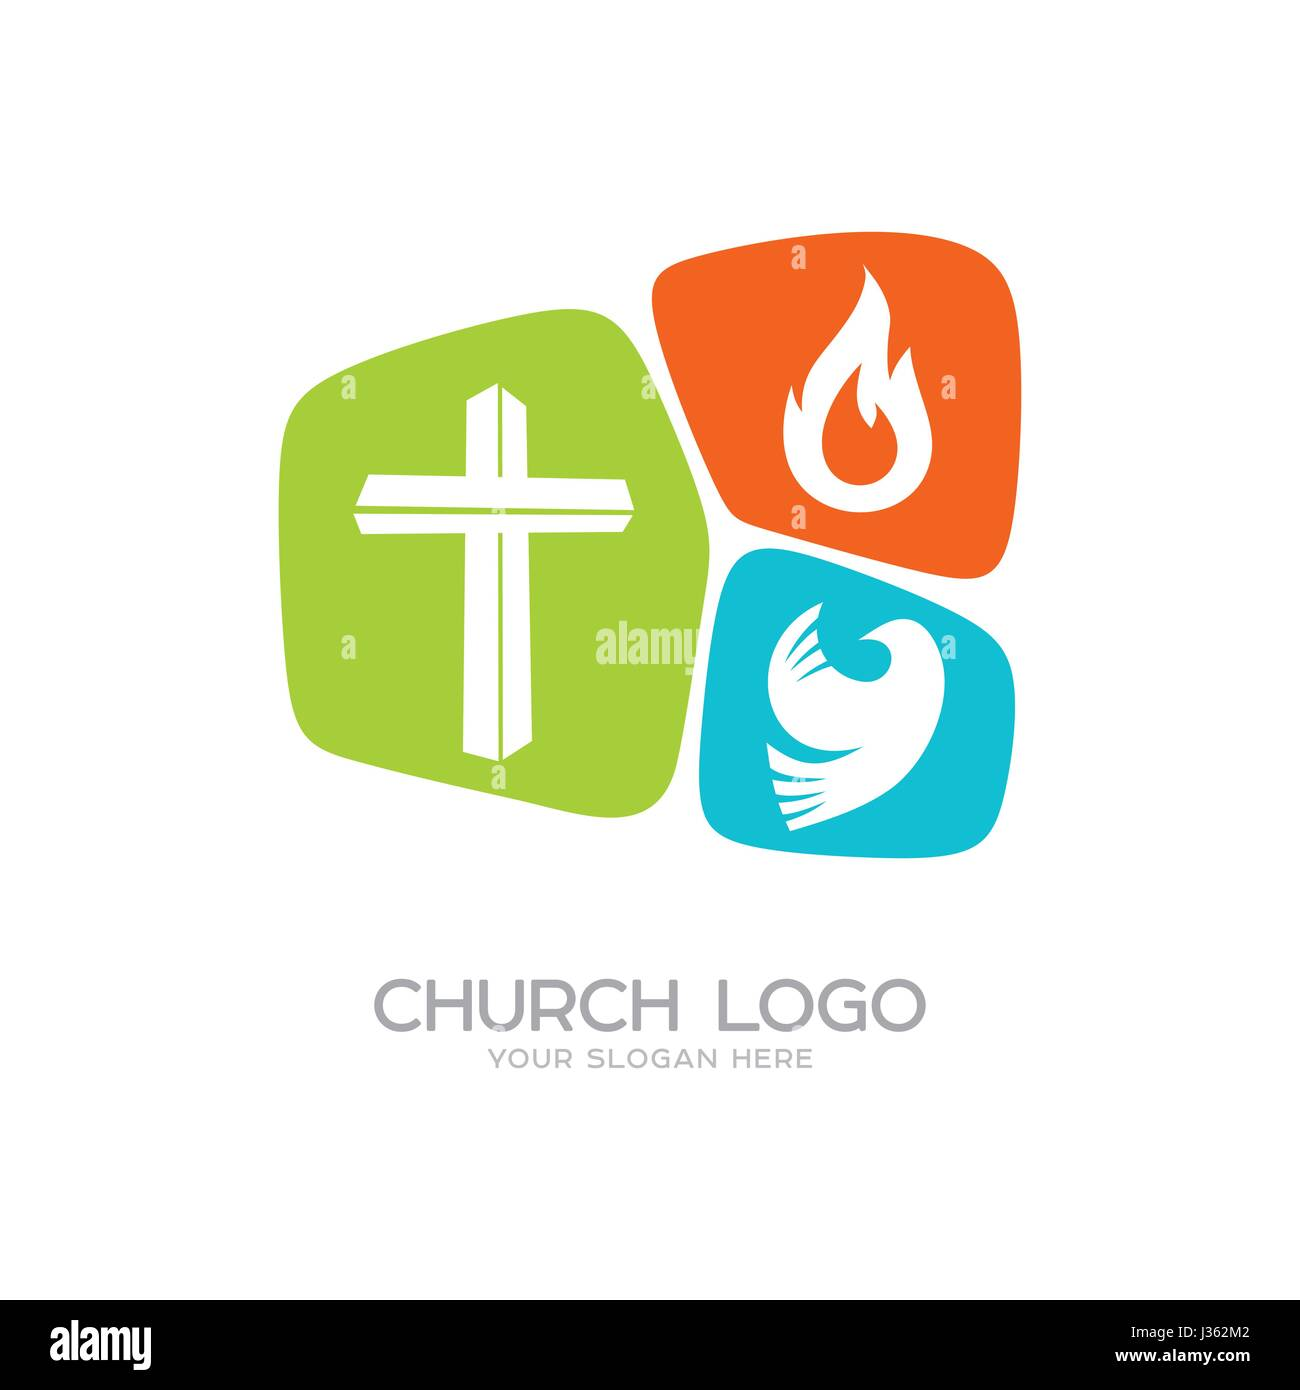 Church logo christian symbols the cross of jesus christ a dove church logo christian symbols the cross of jesus christ a dove the holy spirit and flame thecheapjerseys Gallery